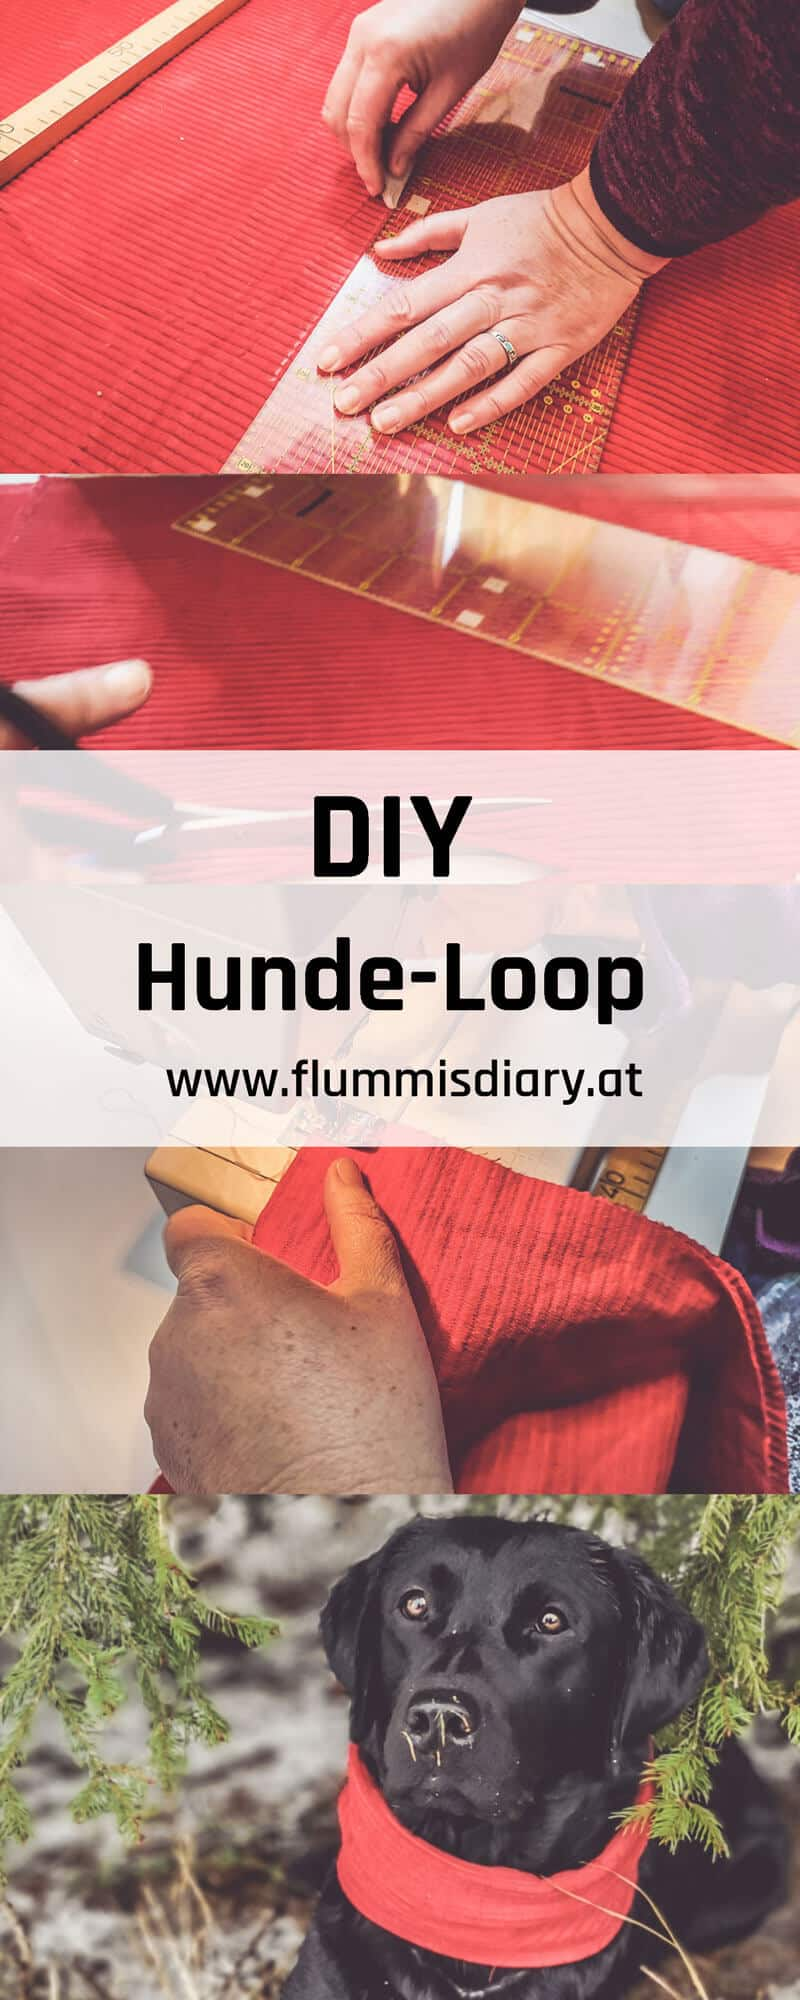 pinterest-dog-loop-diy